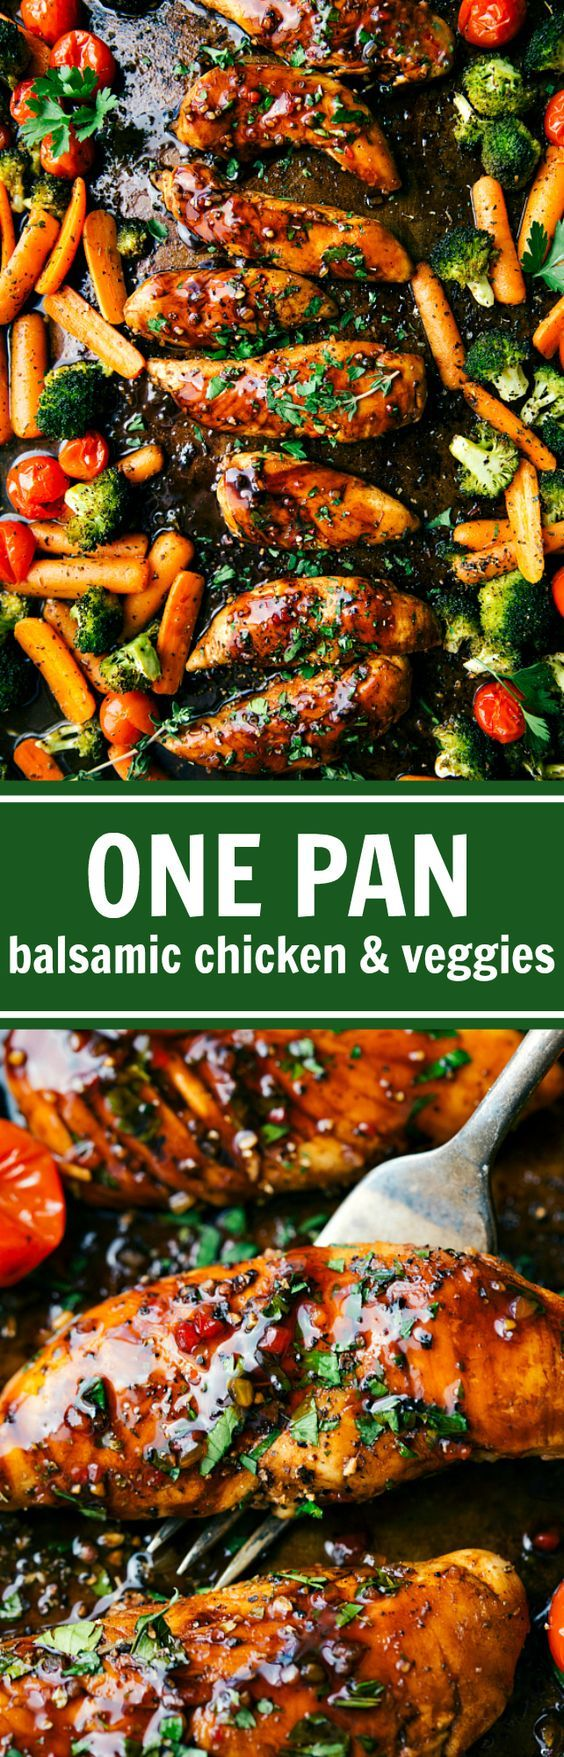 ONE PAN Balsamic Chicken and Veggies | Chelsea's Messy Apron